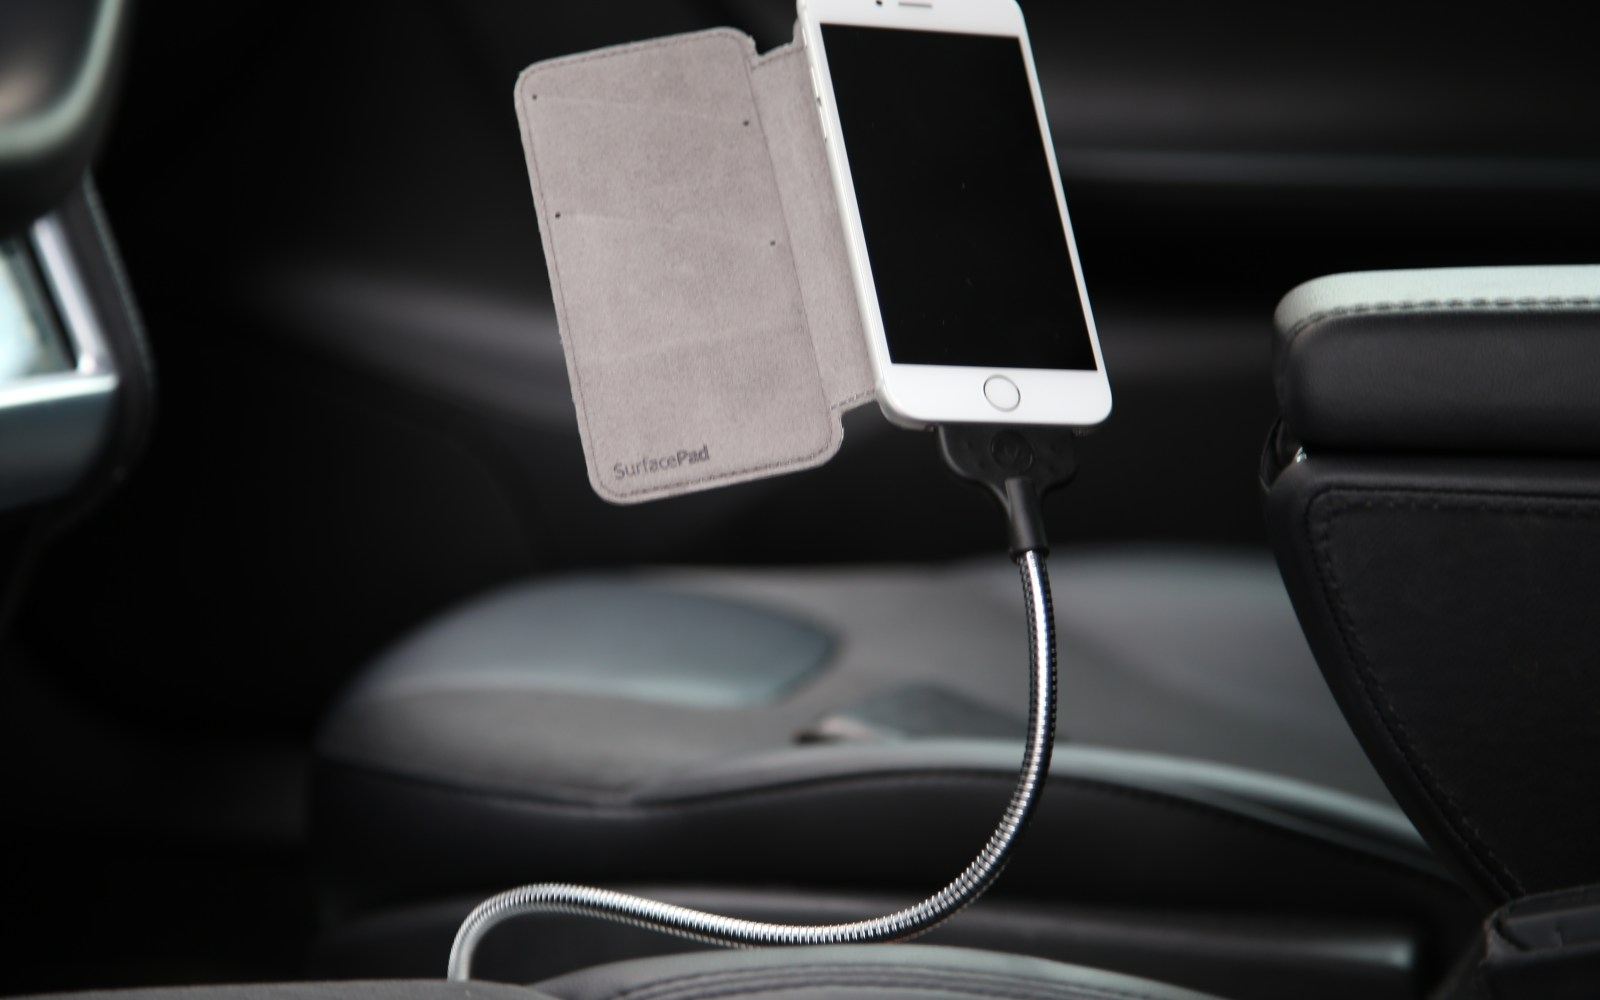 Two of the best iPhone car mounts we've tried: Fuse Chicken Une Bobine and MONTAR by WinnerGear